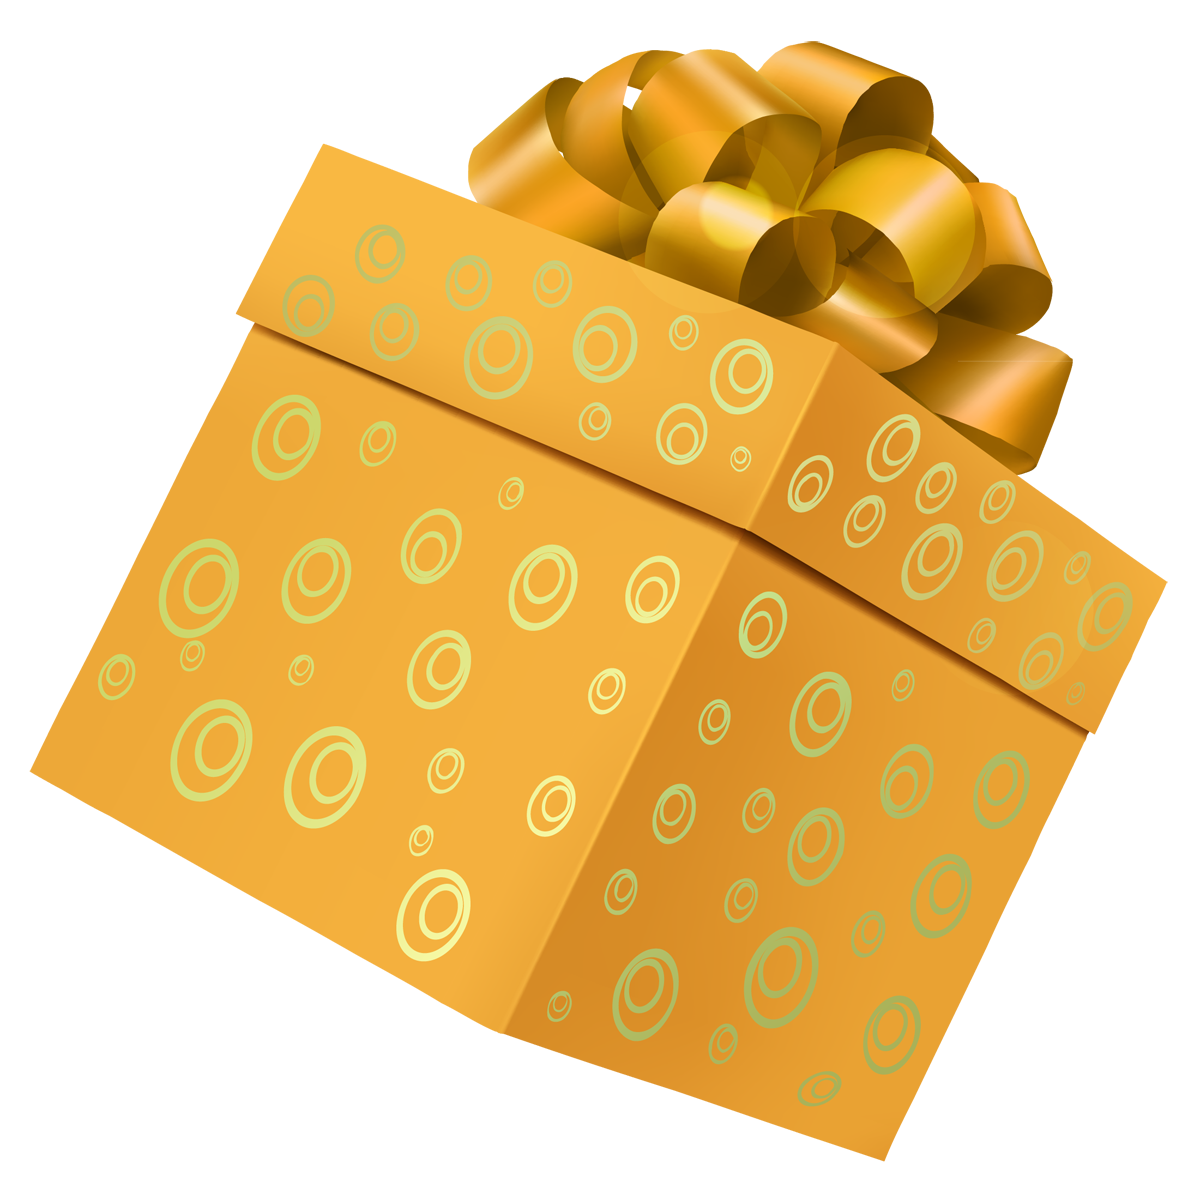 Gift clipart yellow. Box png picture gallery